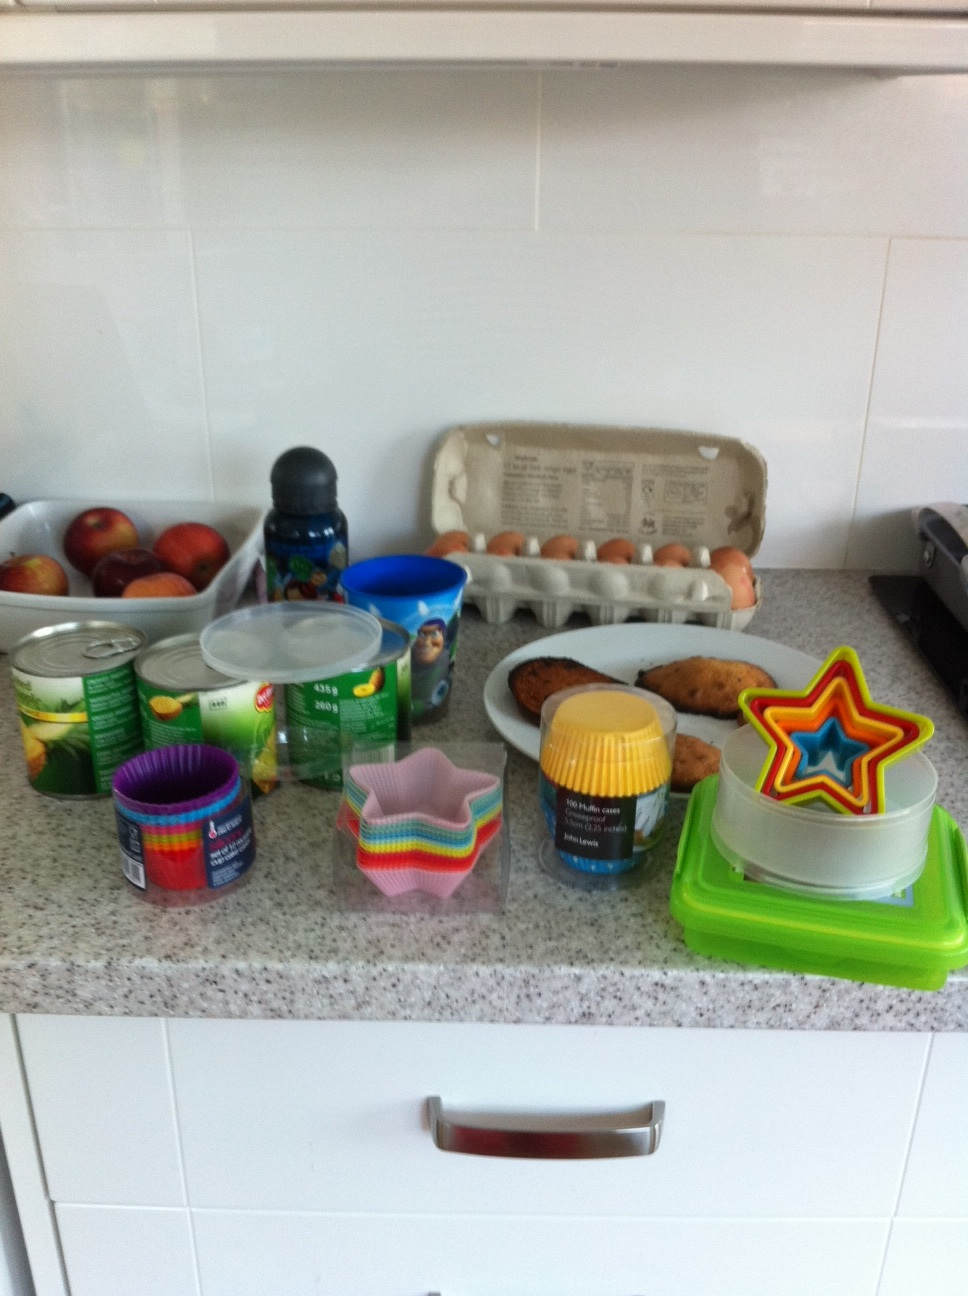 Liz Weston is a good mum.She's making muffins *with* her boys...